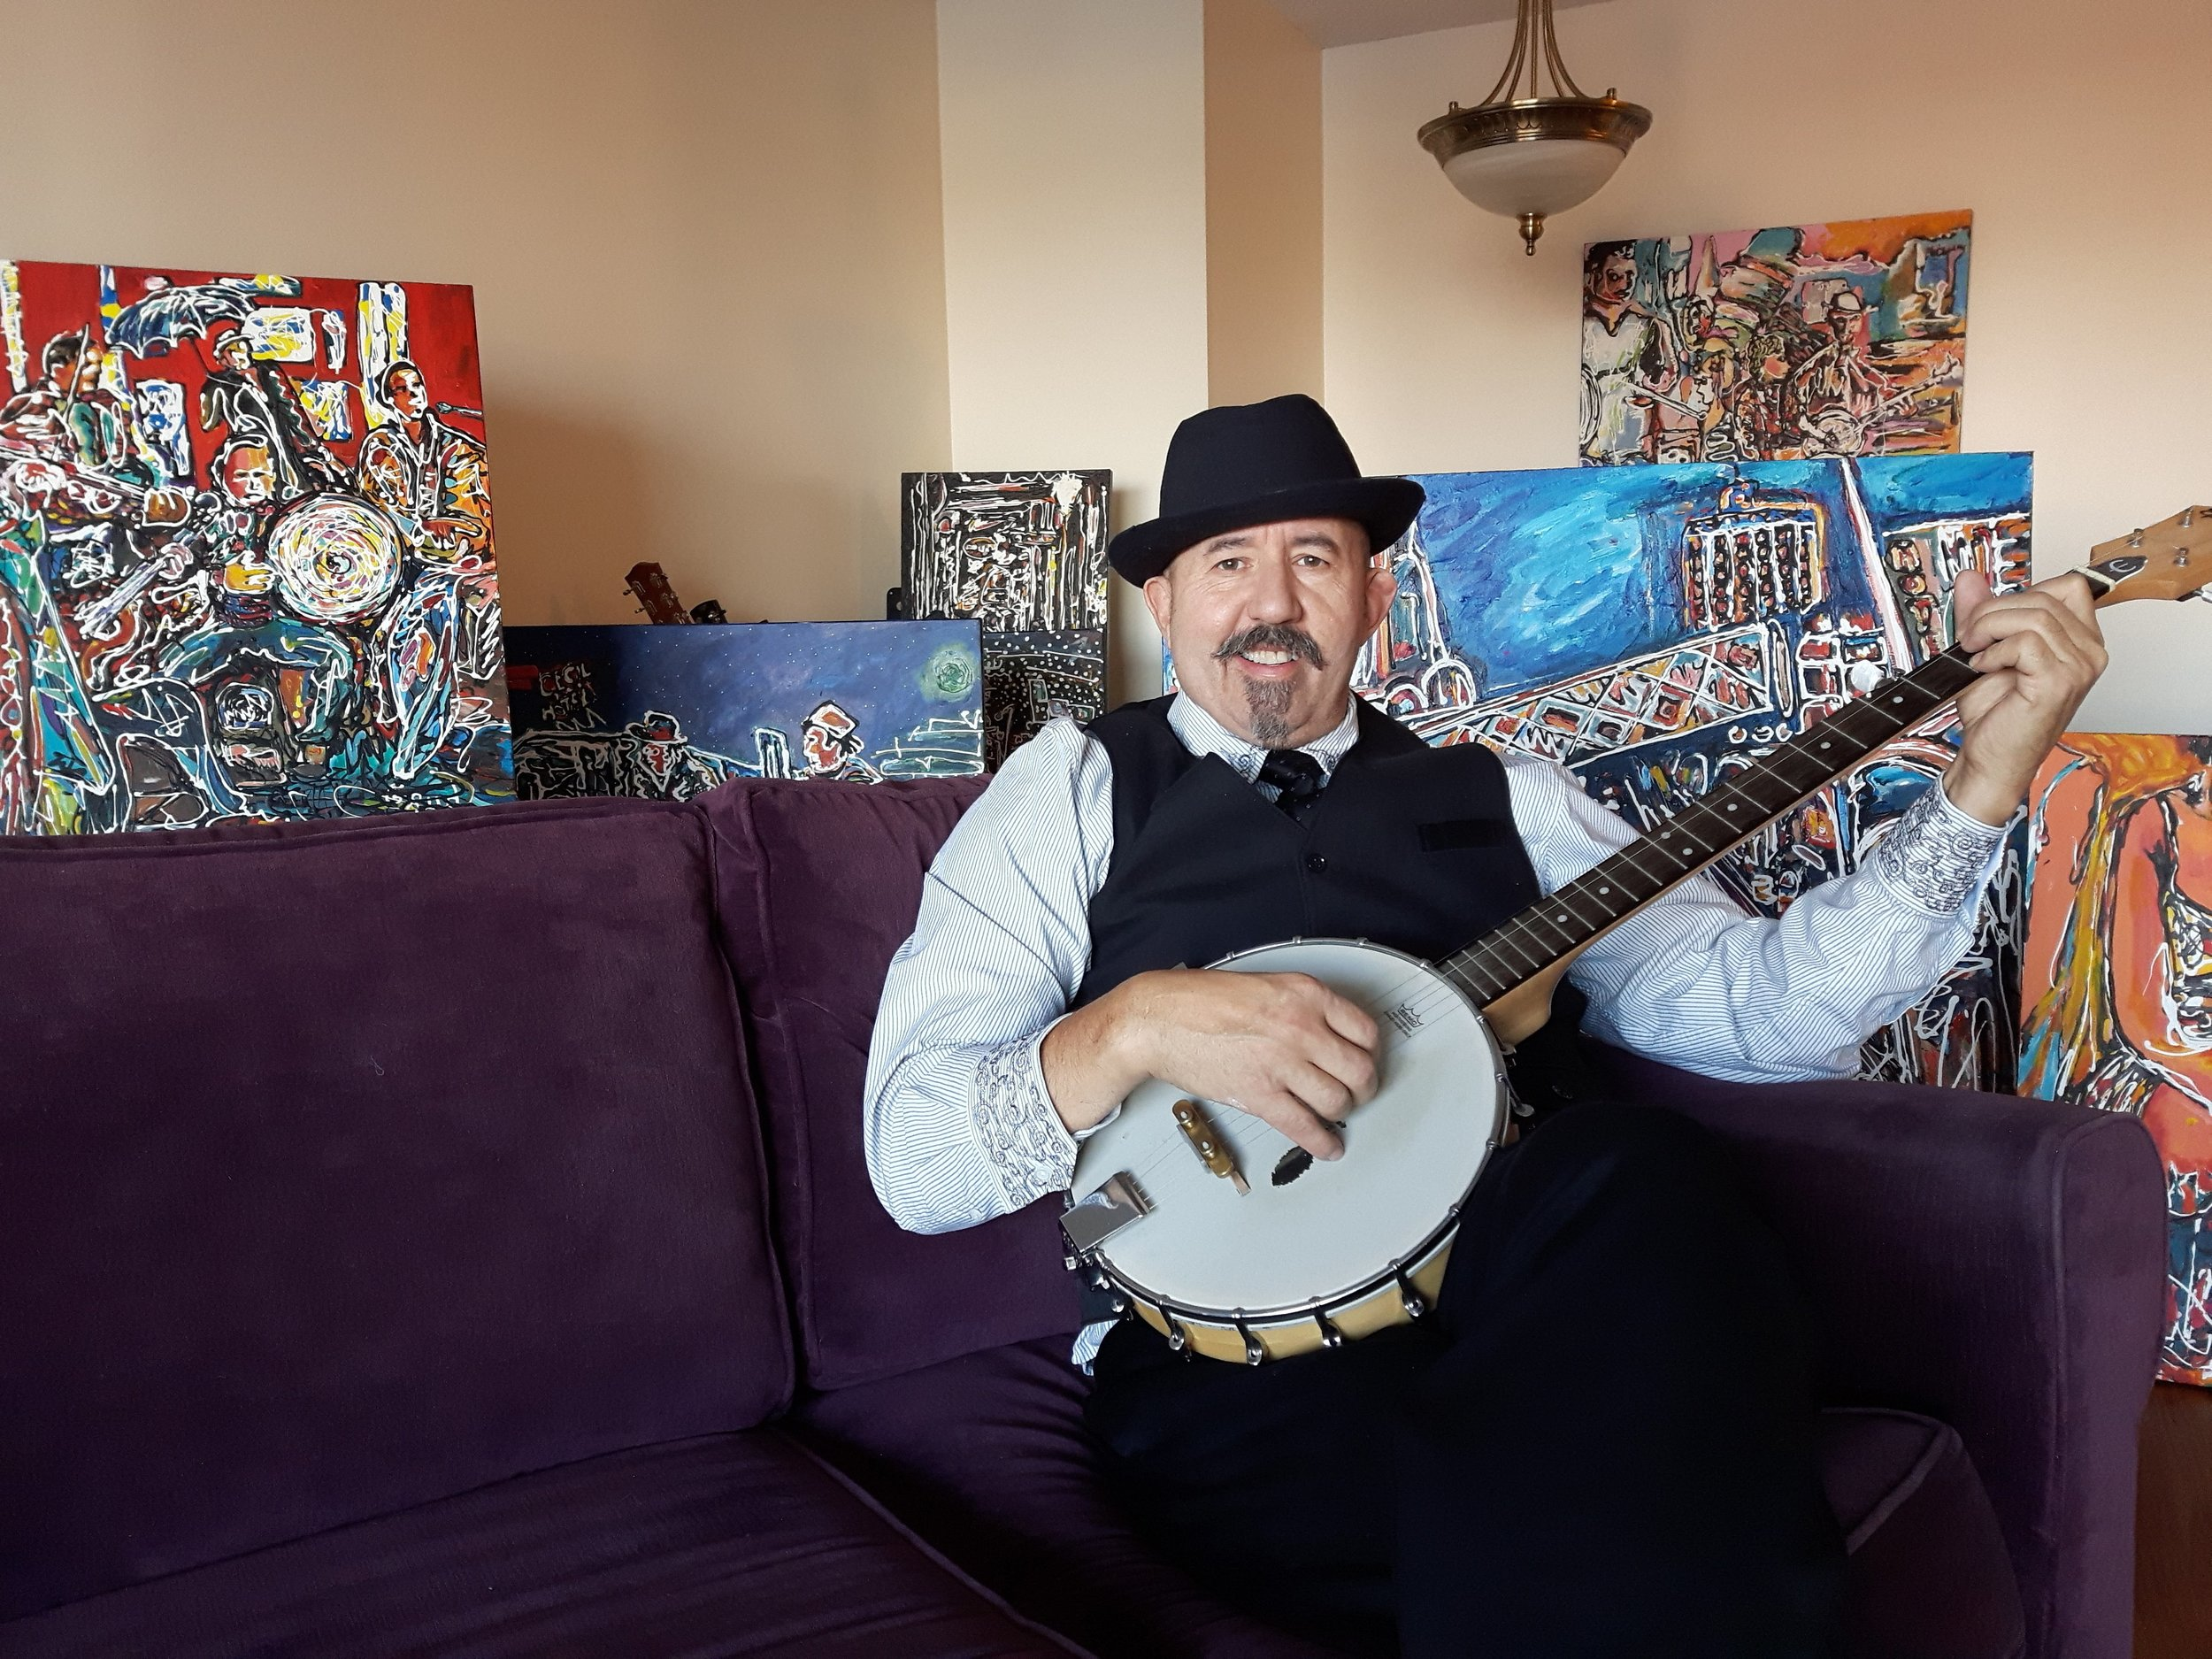 I wanted to be a world class banjo player